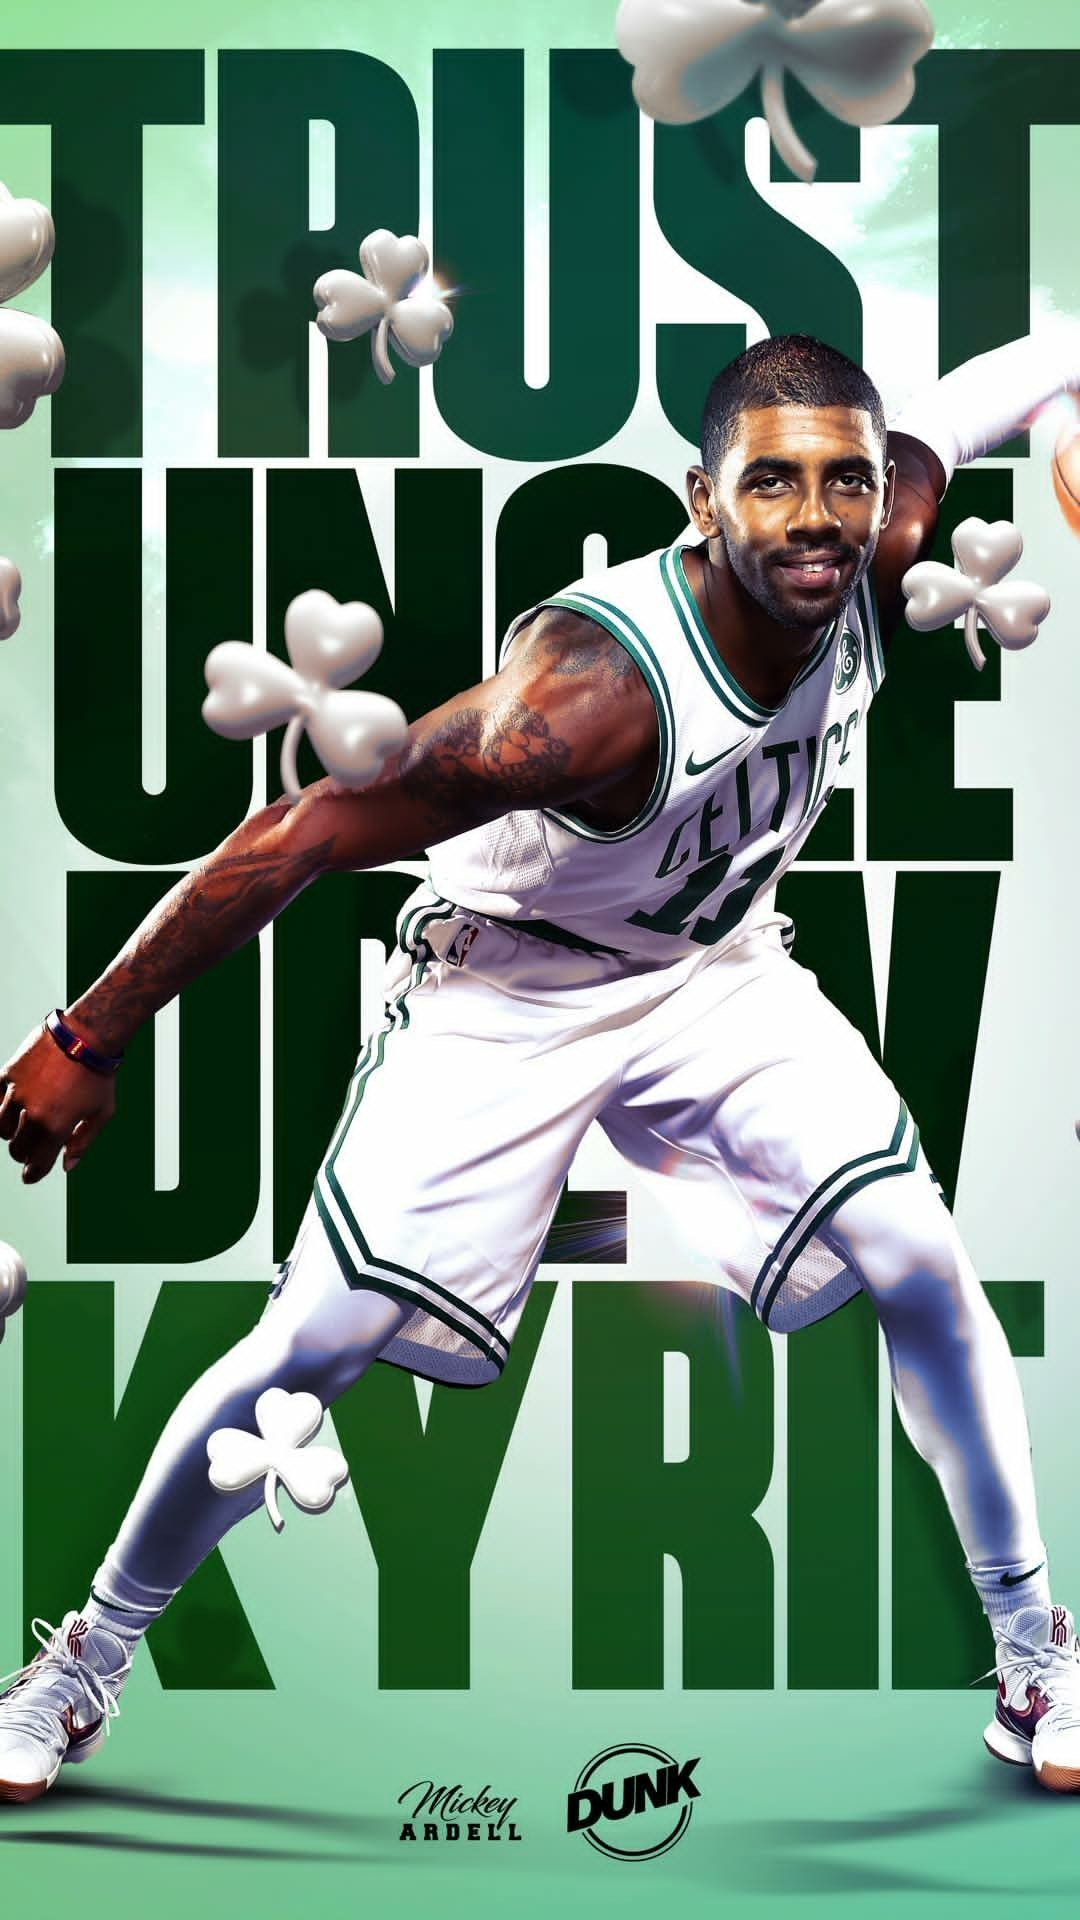 4d4d0f5e0 KYRIE IRVING WALLPAPER